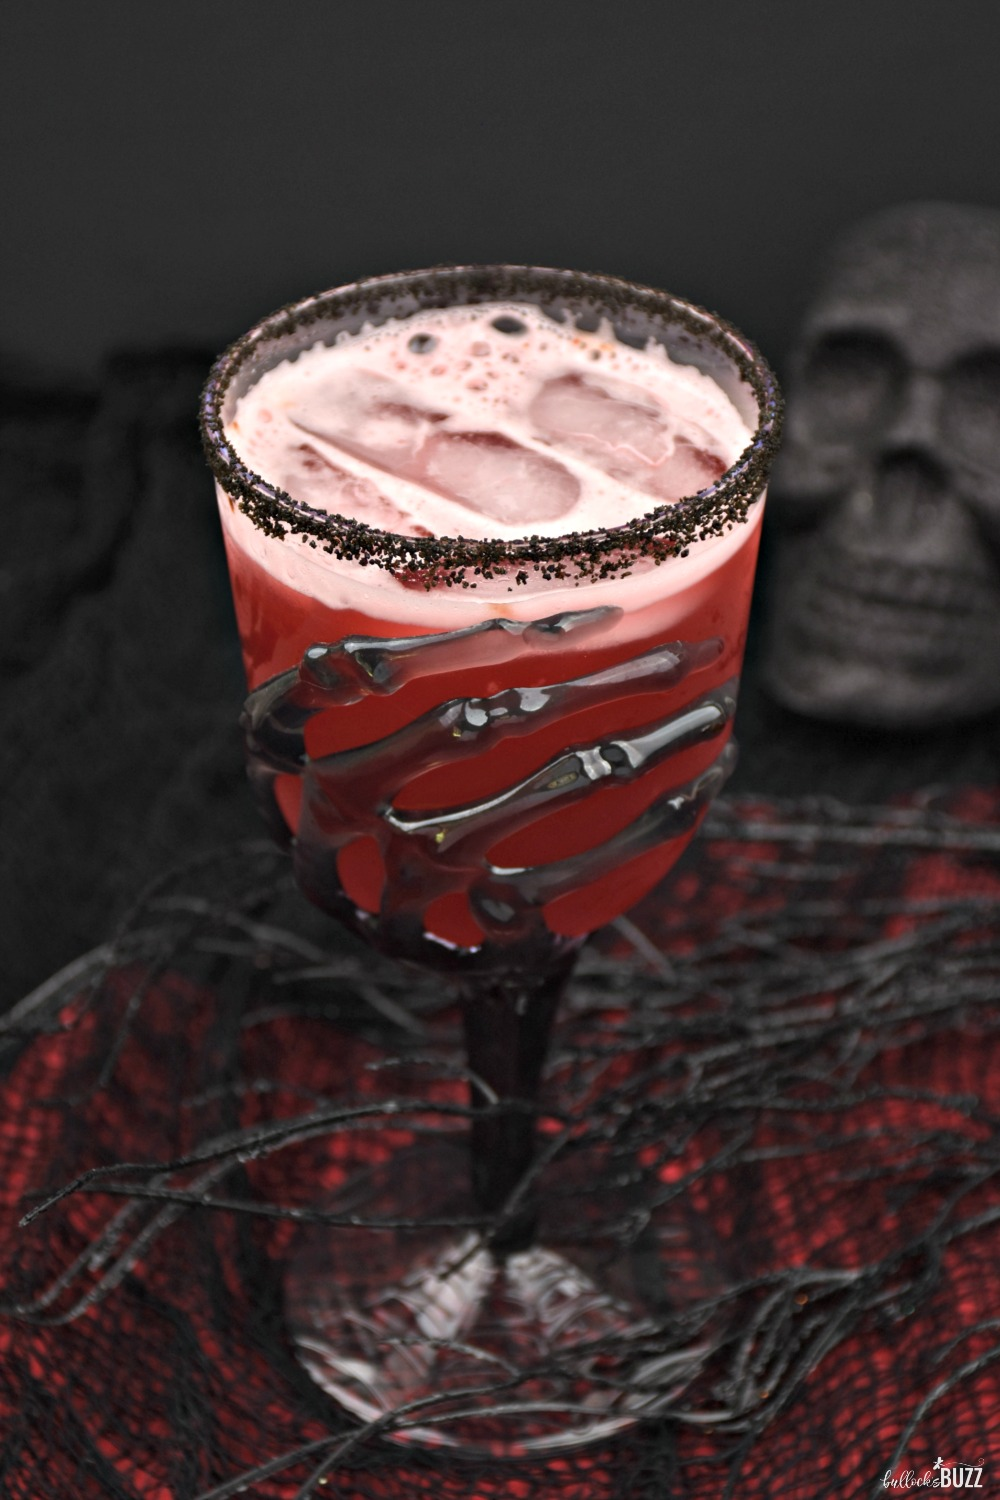 This Vampire's Kiss cocktail is hauntingly easy to make. It requires just a few simple ingredients including cranberry juice, spiced rum, pineapple juice, and a splash of grenadine.